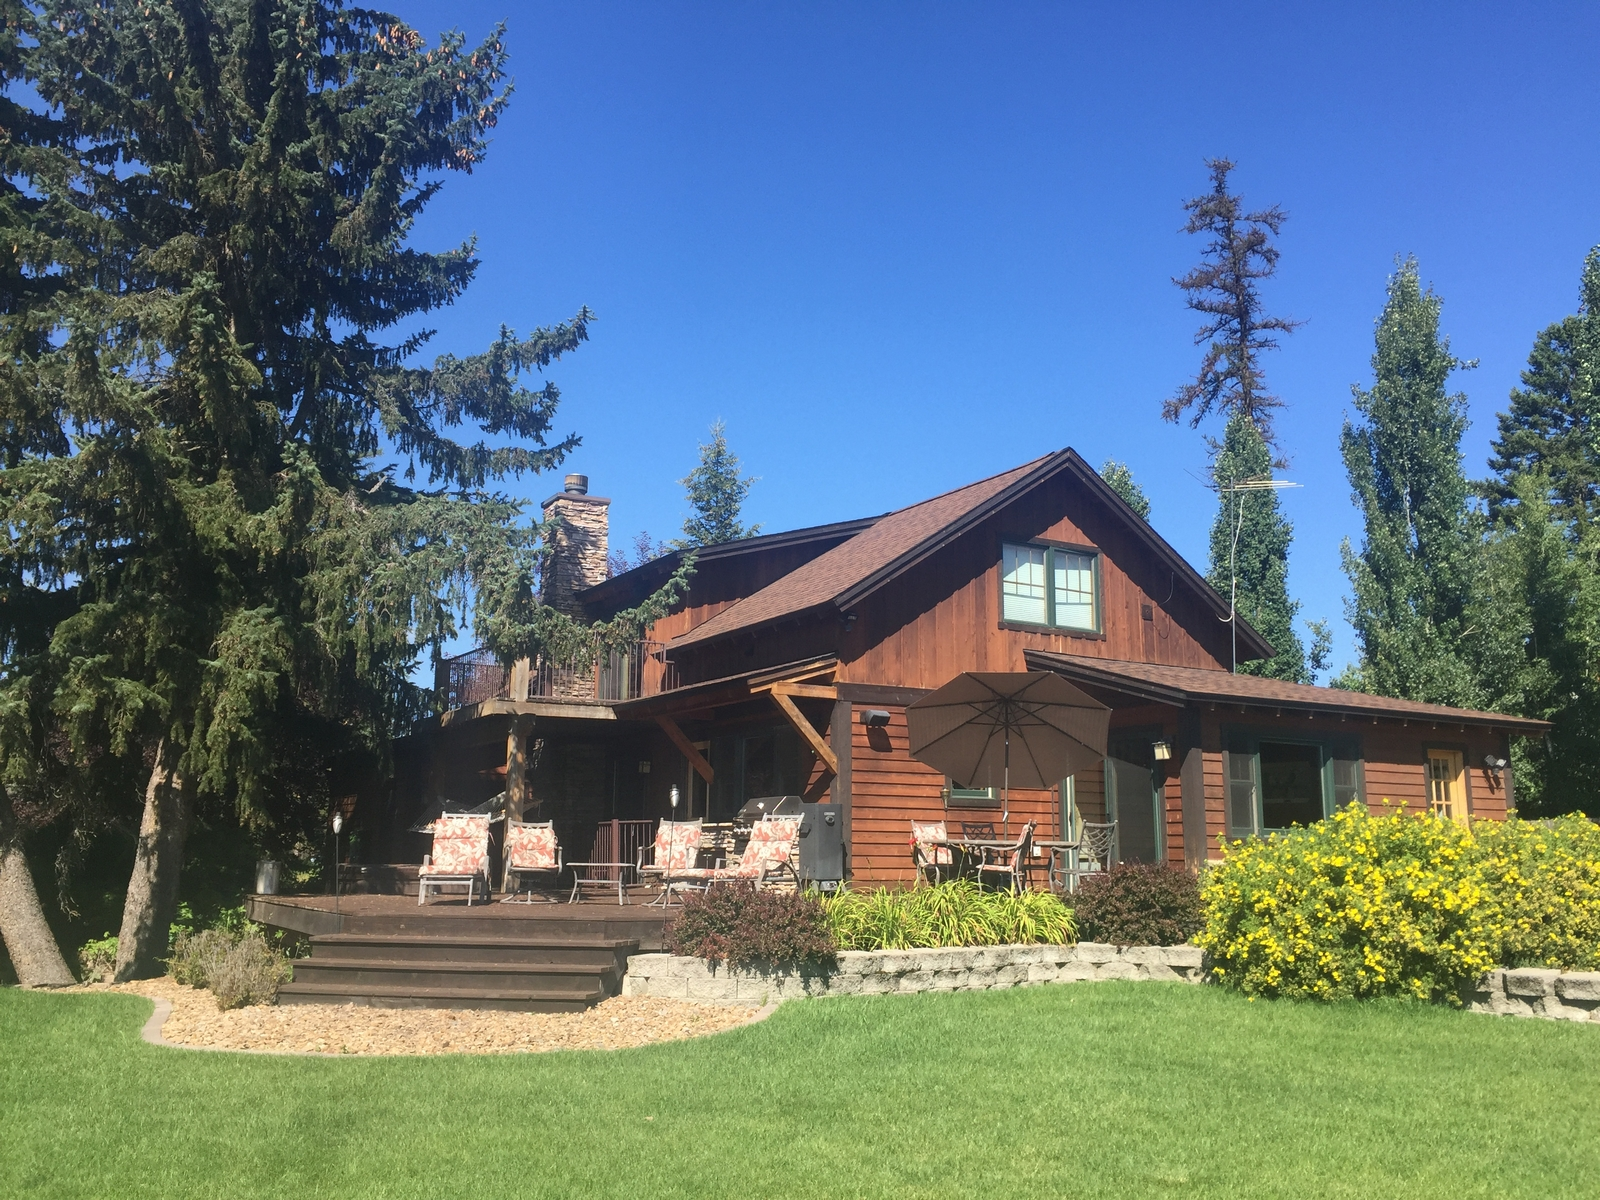 Villa per Vendita alle ore 945 Colorado Ave , Whitefish, MT 59937 945 Colorado Ave Whitefish, Montana, 59937 Stati Uniti